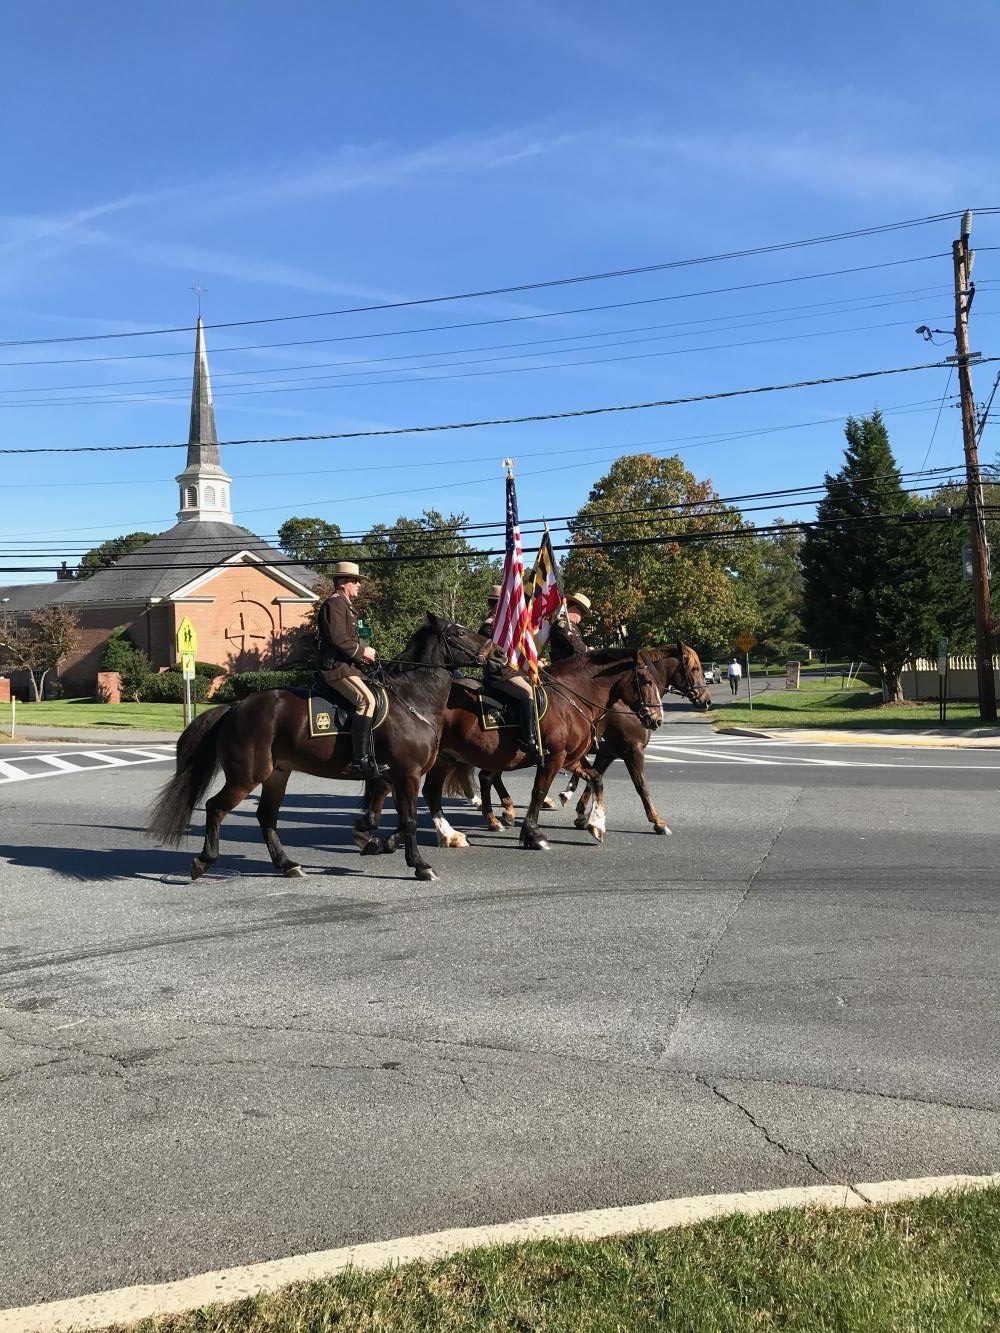 Policemen on horses lead the Parade, holding the colors of Maryland and the U.S.